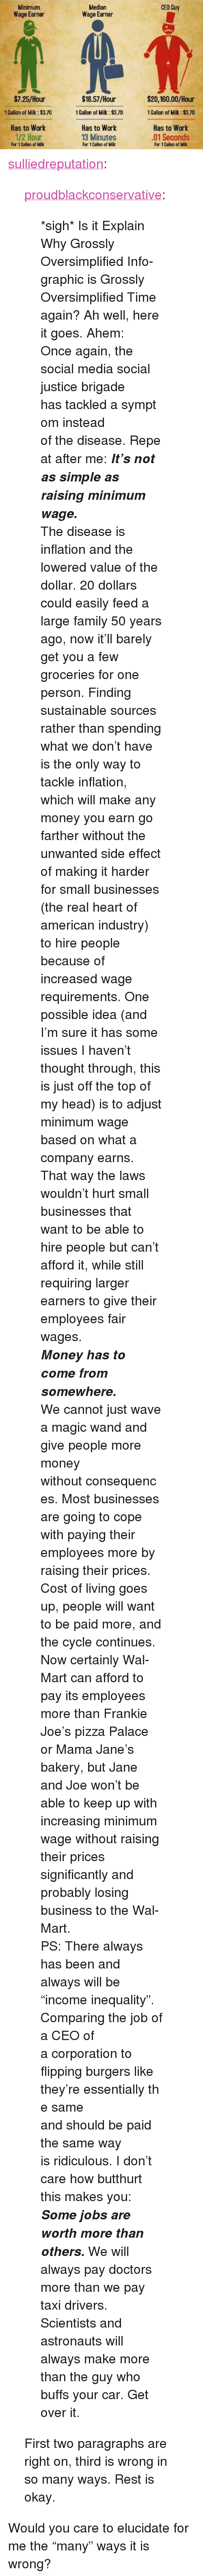 """Butthurt, Family, and Head: Median  Wage Earner  CEO Guy  Minimum  Wage Earner  $7.25/Hour  1 Gallon of Milk:$3.70  Has to Work  1/2 Hour  $16.57/Hour  1 Gallon of Milk: $3.70  Has to Work  $20,160.00/Hour  1 Gallon of Milk: $3.70  Has to Work  01 Seconds  13 Minutes  For 1 Callon of Milk  For 1 Gallon of Milk  For 1 Callon of Milk <p><a class=""""tumblr_blog"""" href=""""http://sulliedreputation.tumblr.com/post/97258362068/proudblackconservative-sigh-is-it-explain-why"""">sulliedreputation</a>:</p> <blockquote> <p><a class=""""tumblr_blog"""" href=""""http://proudblackconservative.tumblr.com/post/97191615294/sigh-is-it-explain-why-grossly-oversimplified"""">proudblackconservative</a>:</p> <blockquote> <p>*sigh* Is it Explain Why Grossly Oversimplified Info-graphic is Grossly Oversimplified Time again? Ah well, here it goes. Ahem:</p> <p><span><span>Onceagain, the social media social justice brigade hastackledasymptominstead ofthedisease.Repeat after me: <em><strong>It's not assimple as raising minimum wage. </strong></em></span></span></p> <p><span><span>The disease is inflation and the lowered value of the dollar. 20 dollars could easily feed a large family 50 years ago, now it'll barely get you a few groceries for one person. Finding sustainable sources rather than spending what we don't have is the only way to tackle inflation, which will make any money you earn go farther without the unwanted side effect of making it harder for small businesses (the real heart of american industry) to hire people because of increased wage requirements. One possible idea (and I'm sure it has some issues I haven't thought through, this is just off the top of my head) is to adjust minimum wage based on what a company earns. That way the laws wouldn't hurt small businesses that want to be able to hire people but can't afford it, while still requiring larger earners to give their employees fair wages.</span></span></p> <p><em><strong><span><span>Money has to come from somewhere.</span></span></strong></em>"""